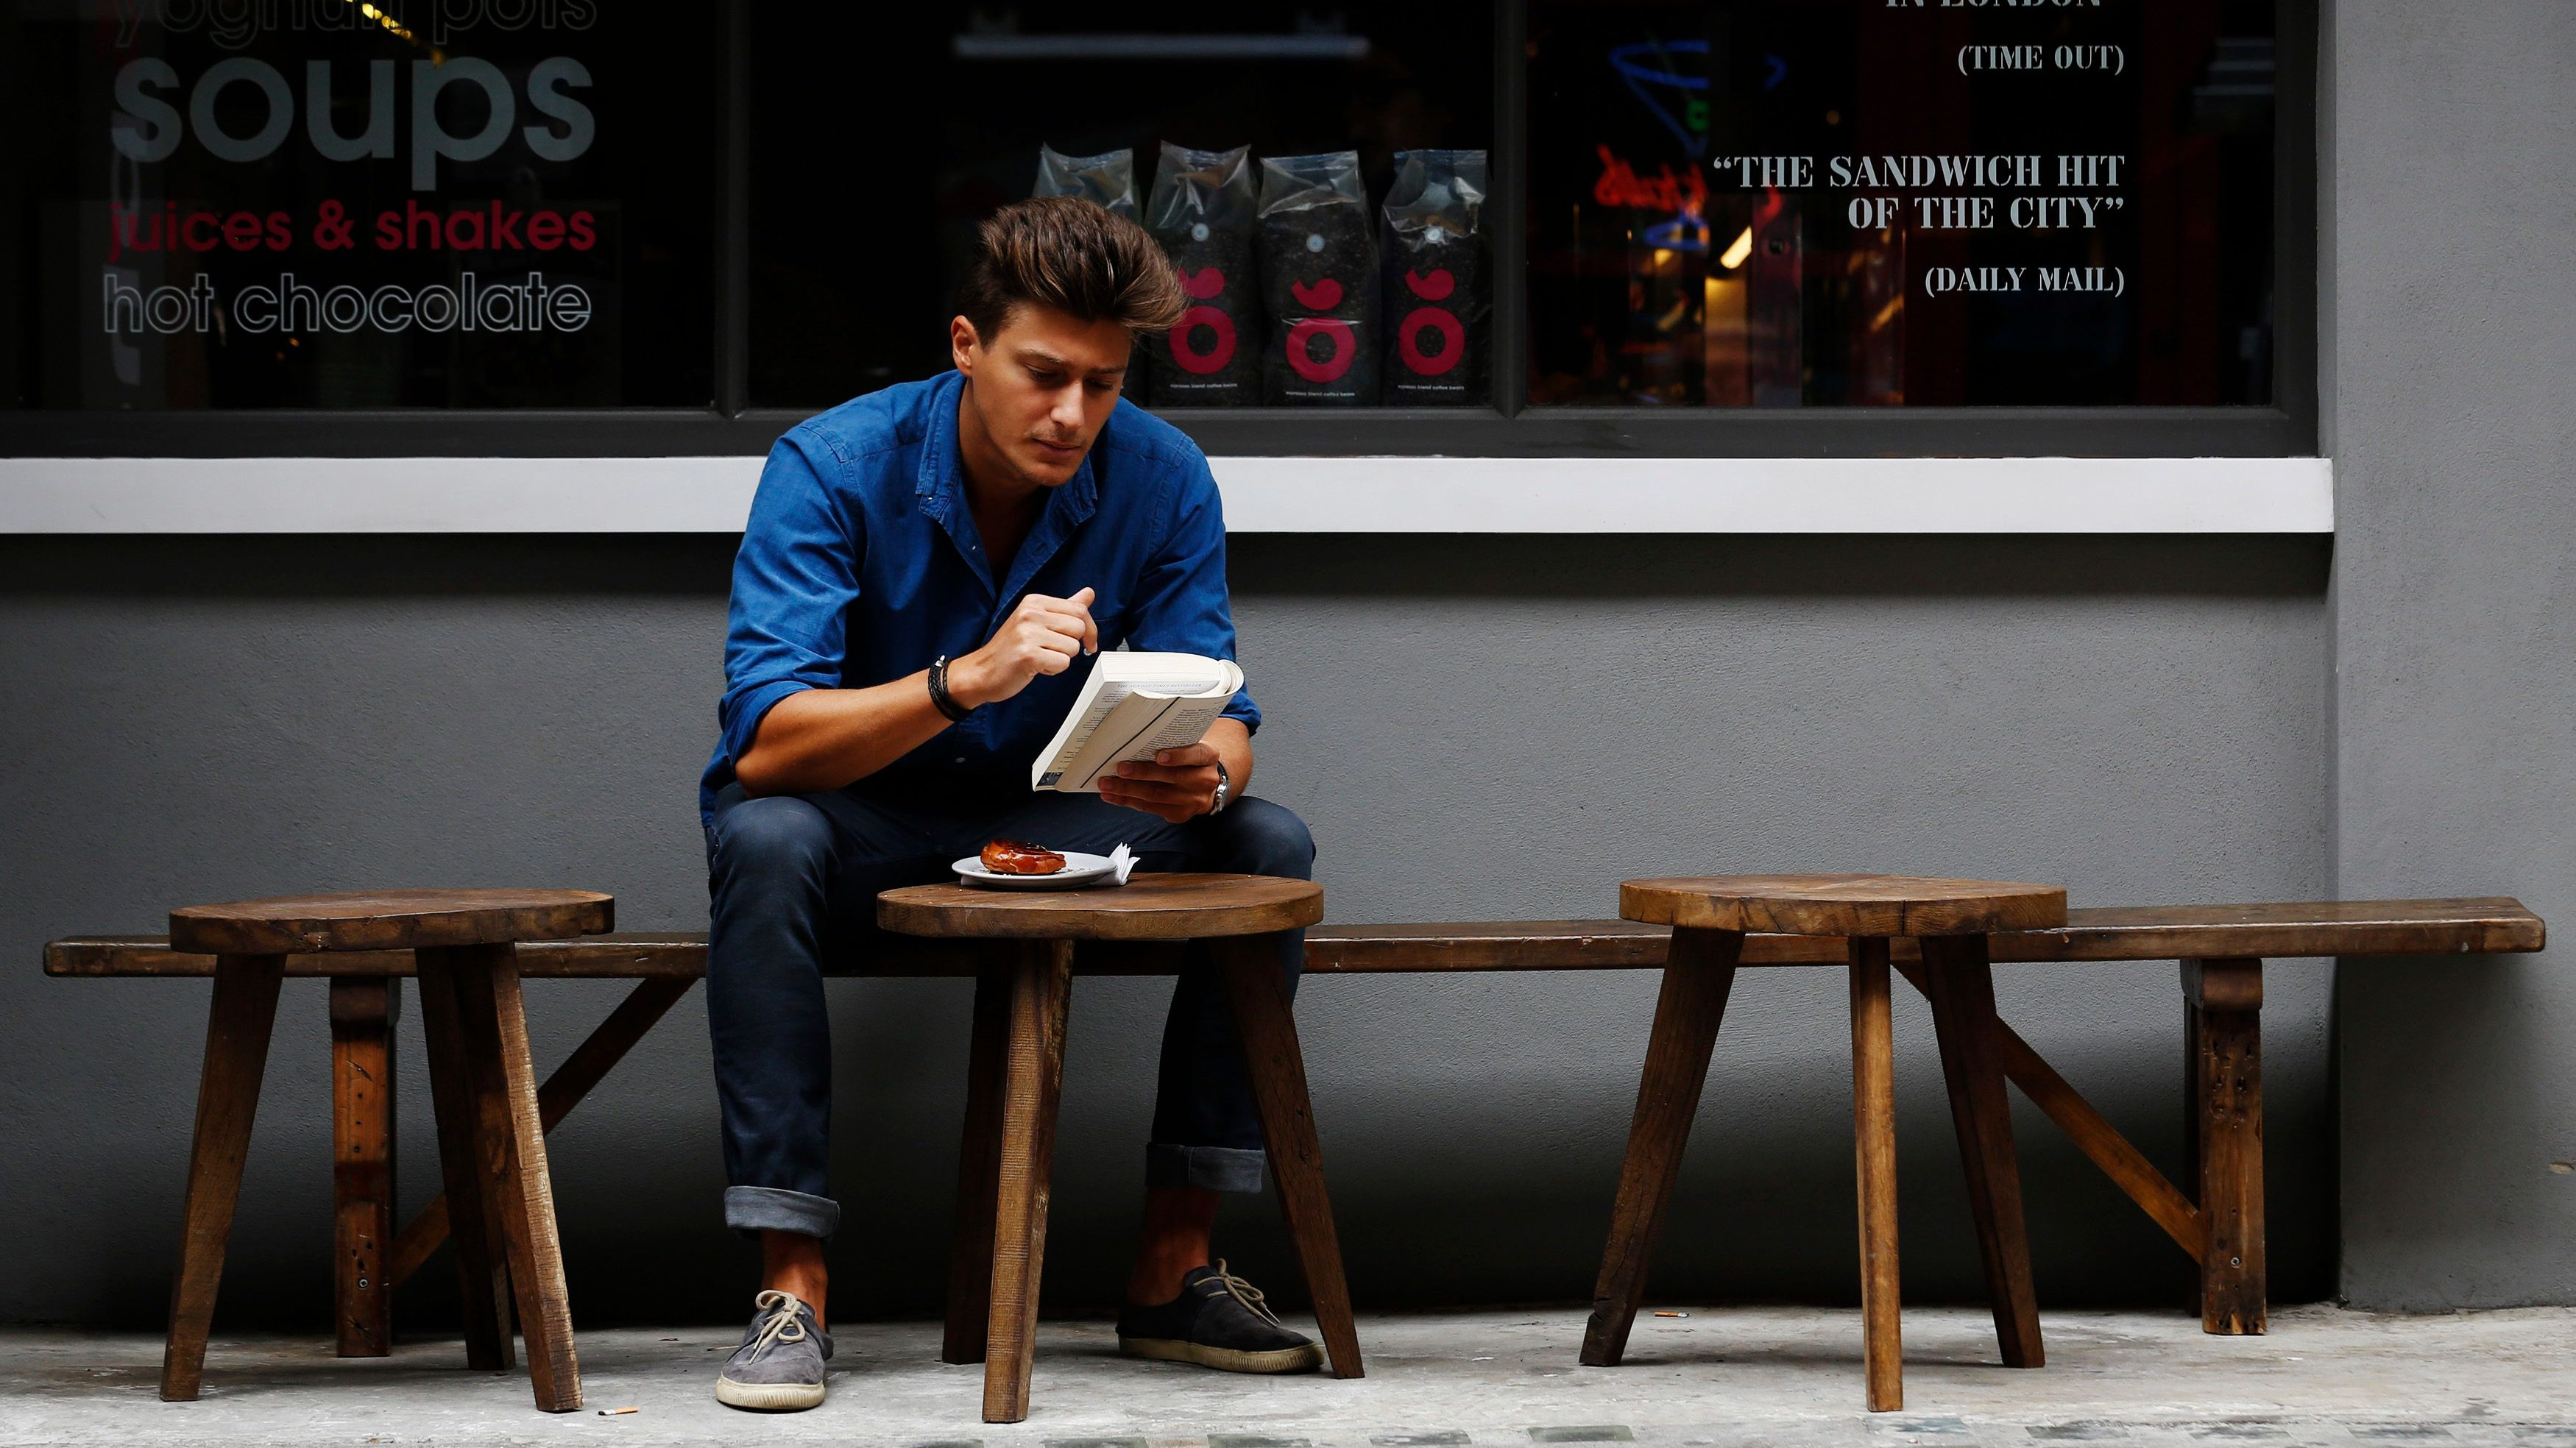 A man reads a book outside a cafe in central London August 10, 2013.